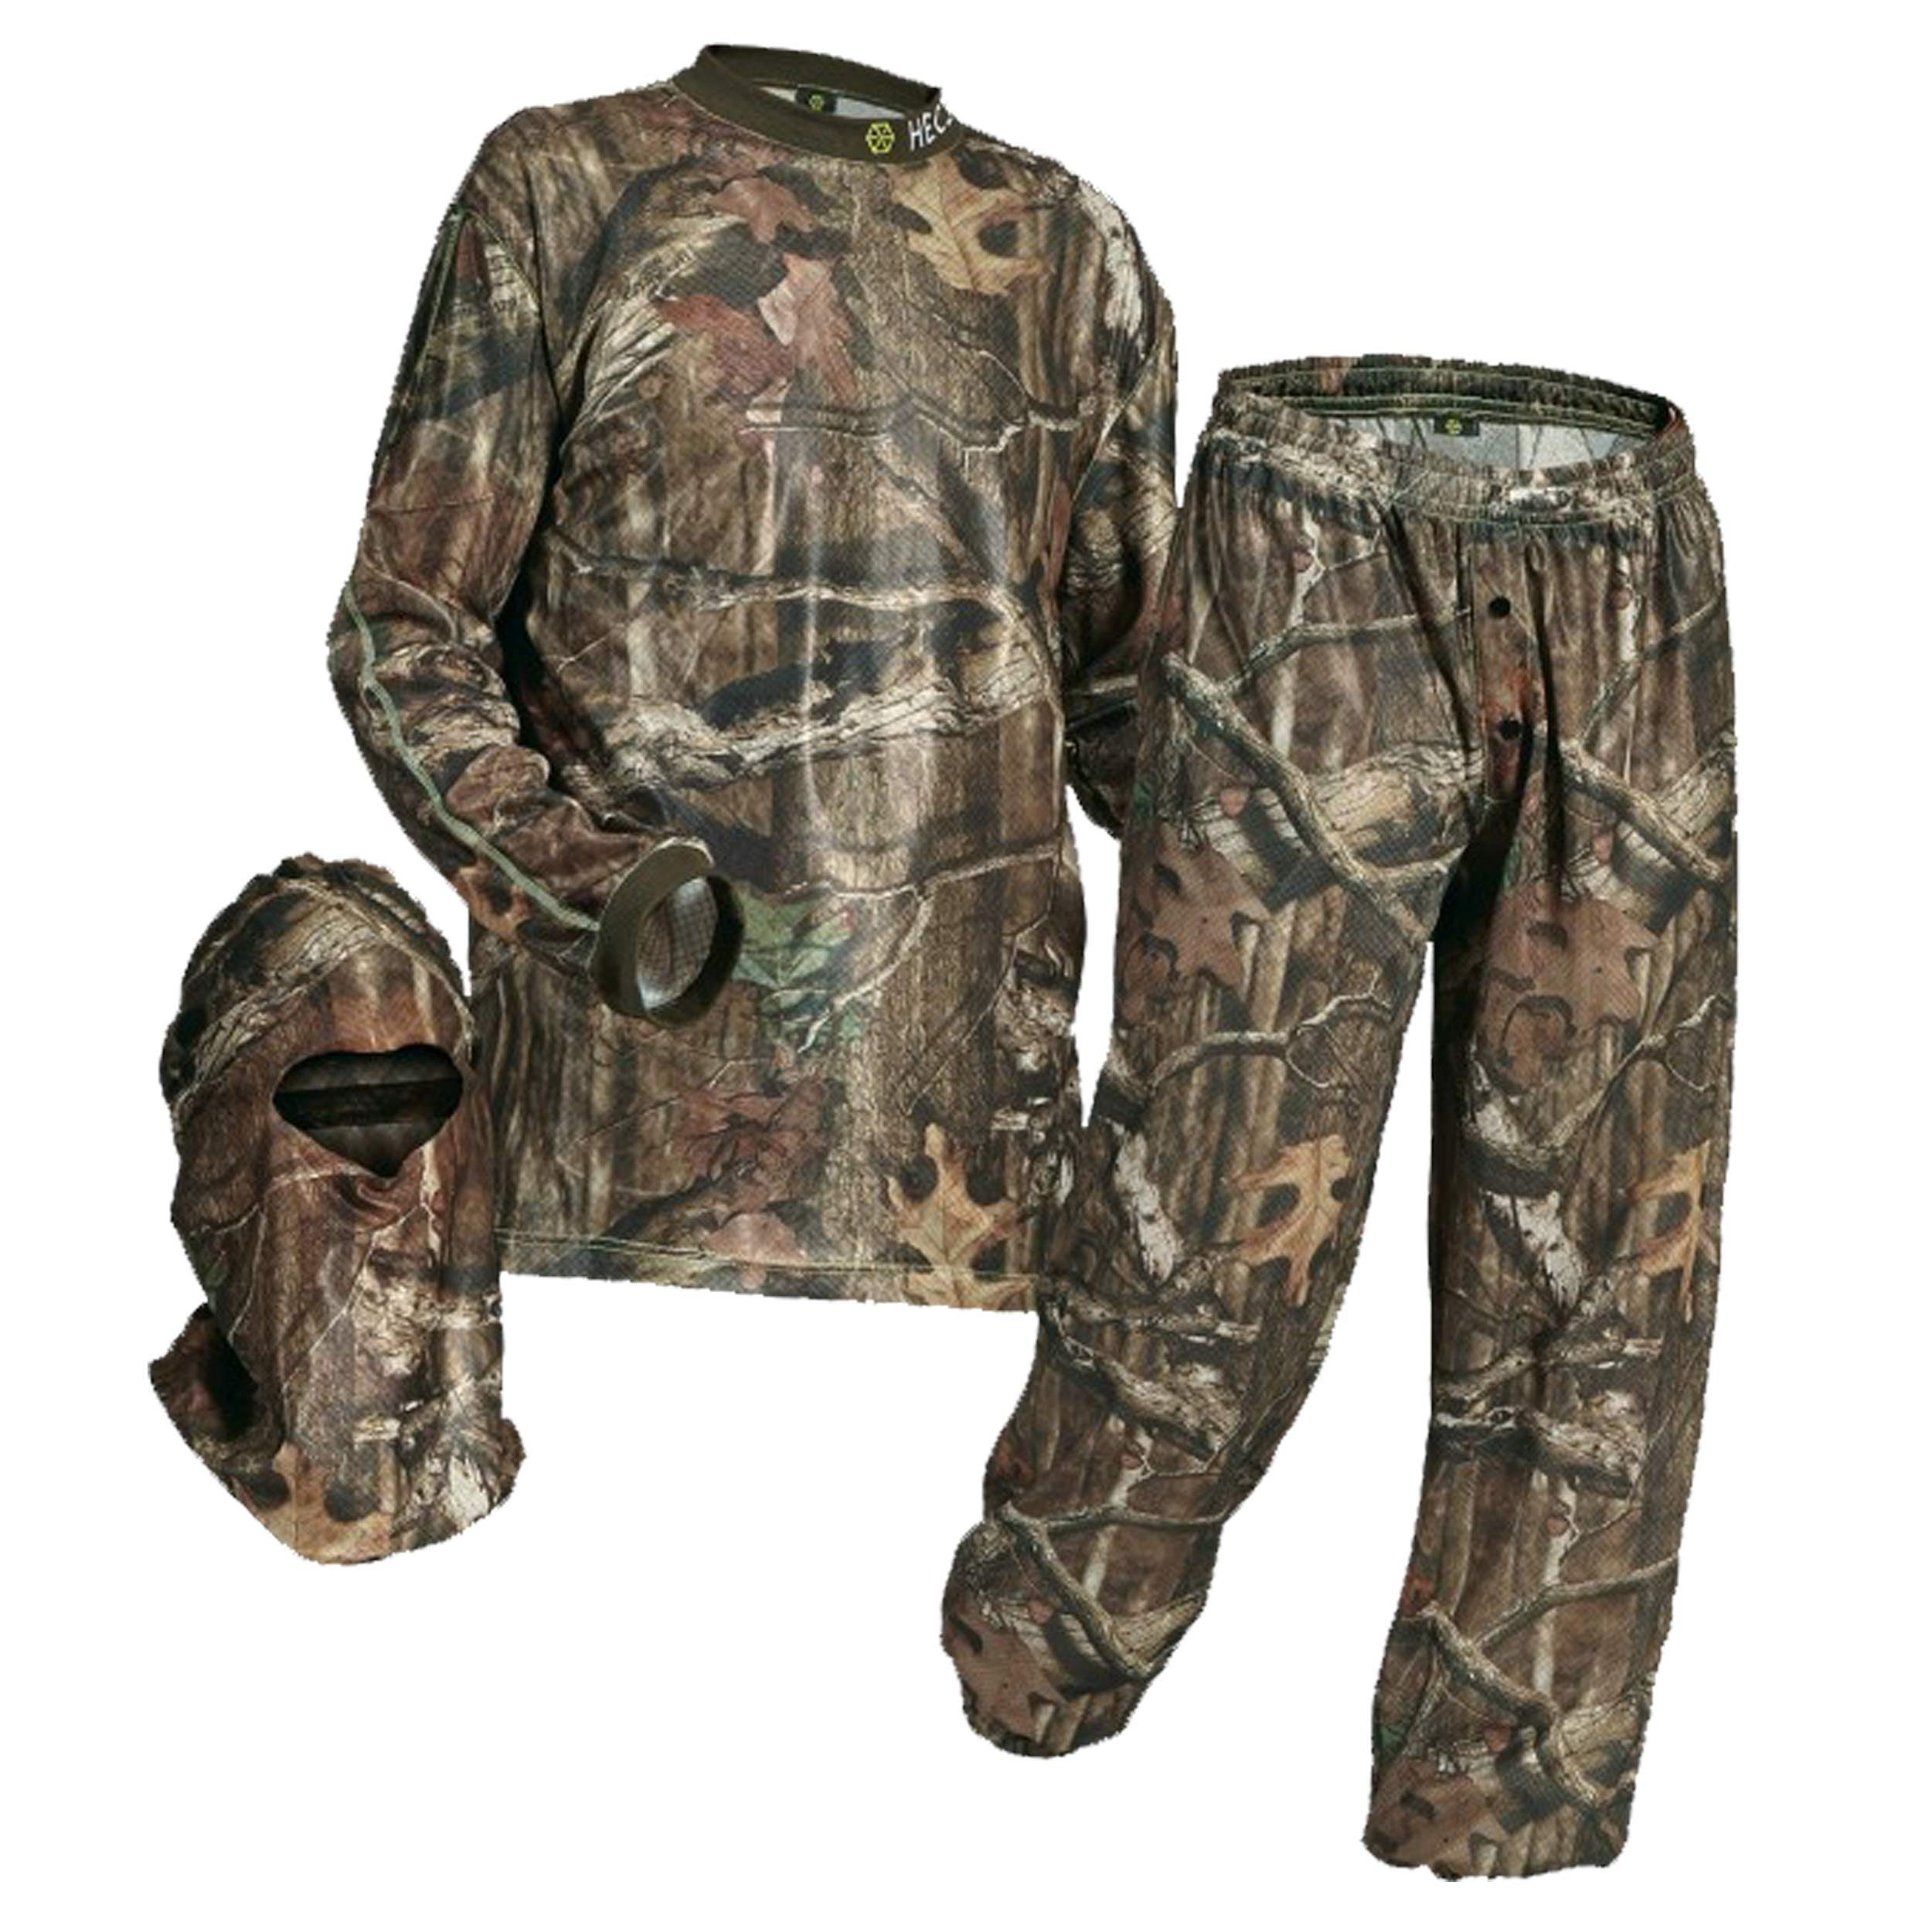 HECS Suit Deer Hunting Clothing with Human Energy Concealment Technology - Camo 3 Piece Shirt, Pants, Headcover - Lightweight Breathable in Mossy Oak Country & Realtree Xtra | Mossy Oak, Large by HECS